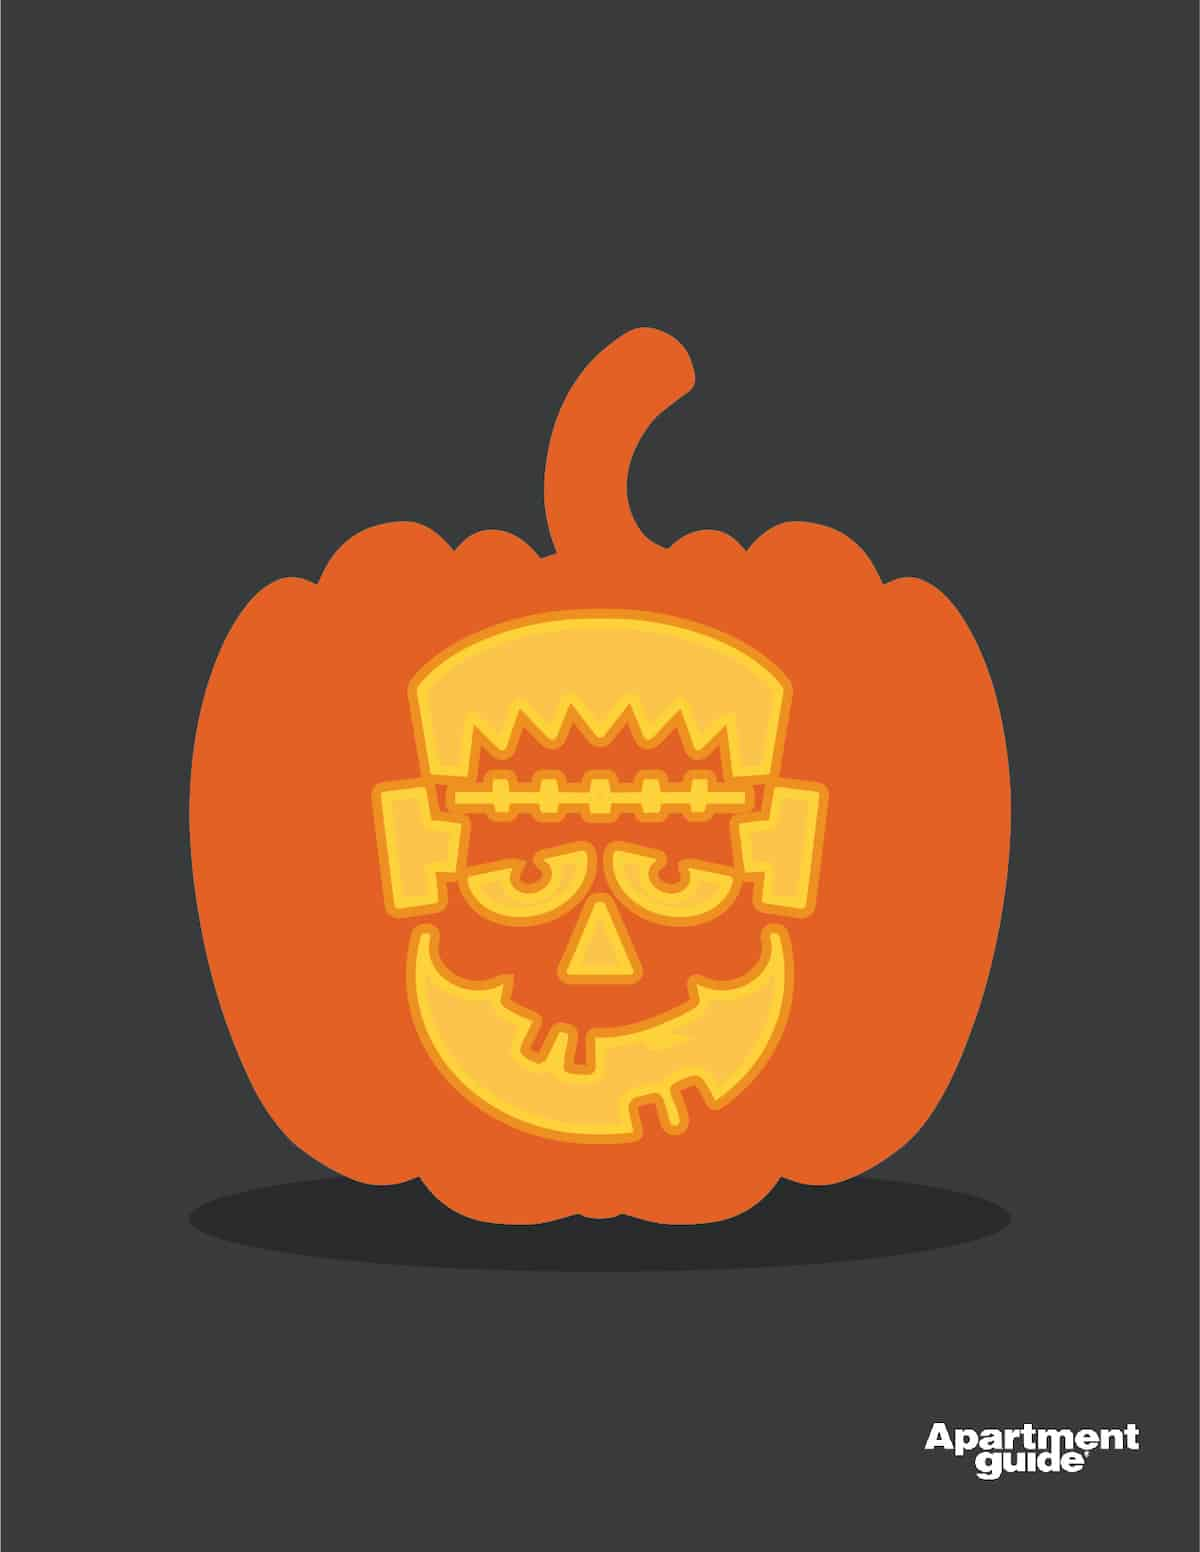 Pumpkin Carving Stencils For Halloween Printable Apartmentguide Com